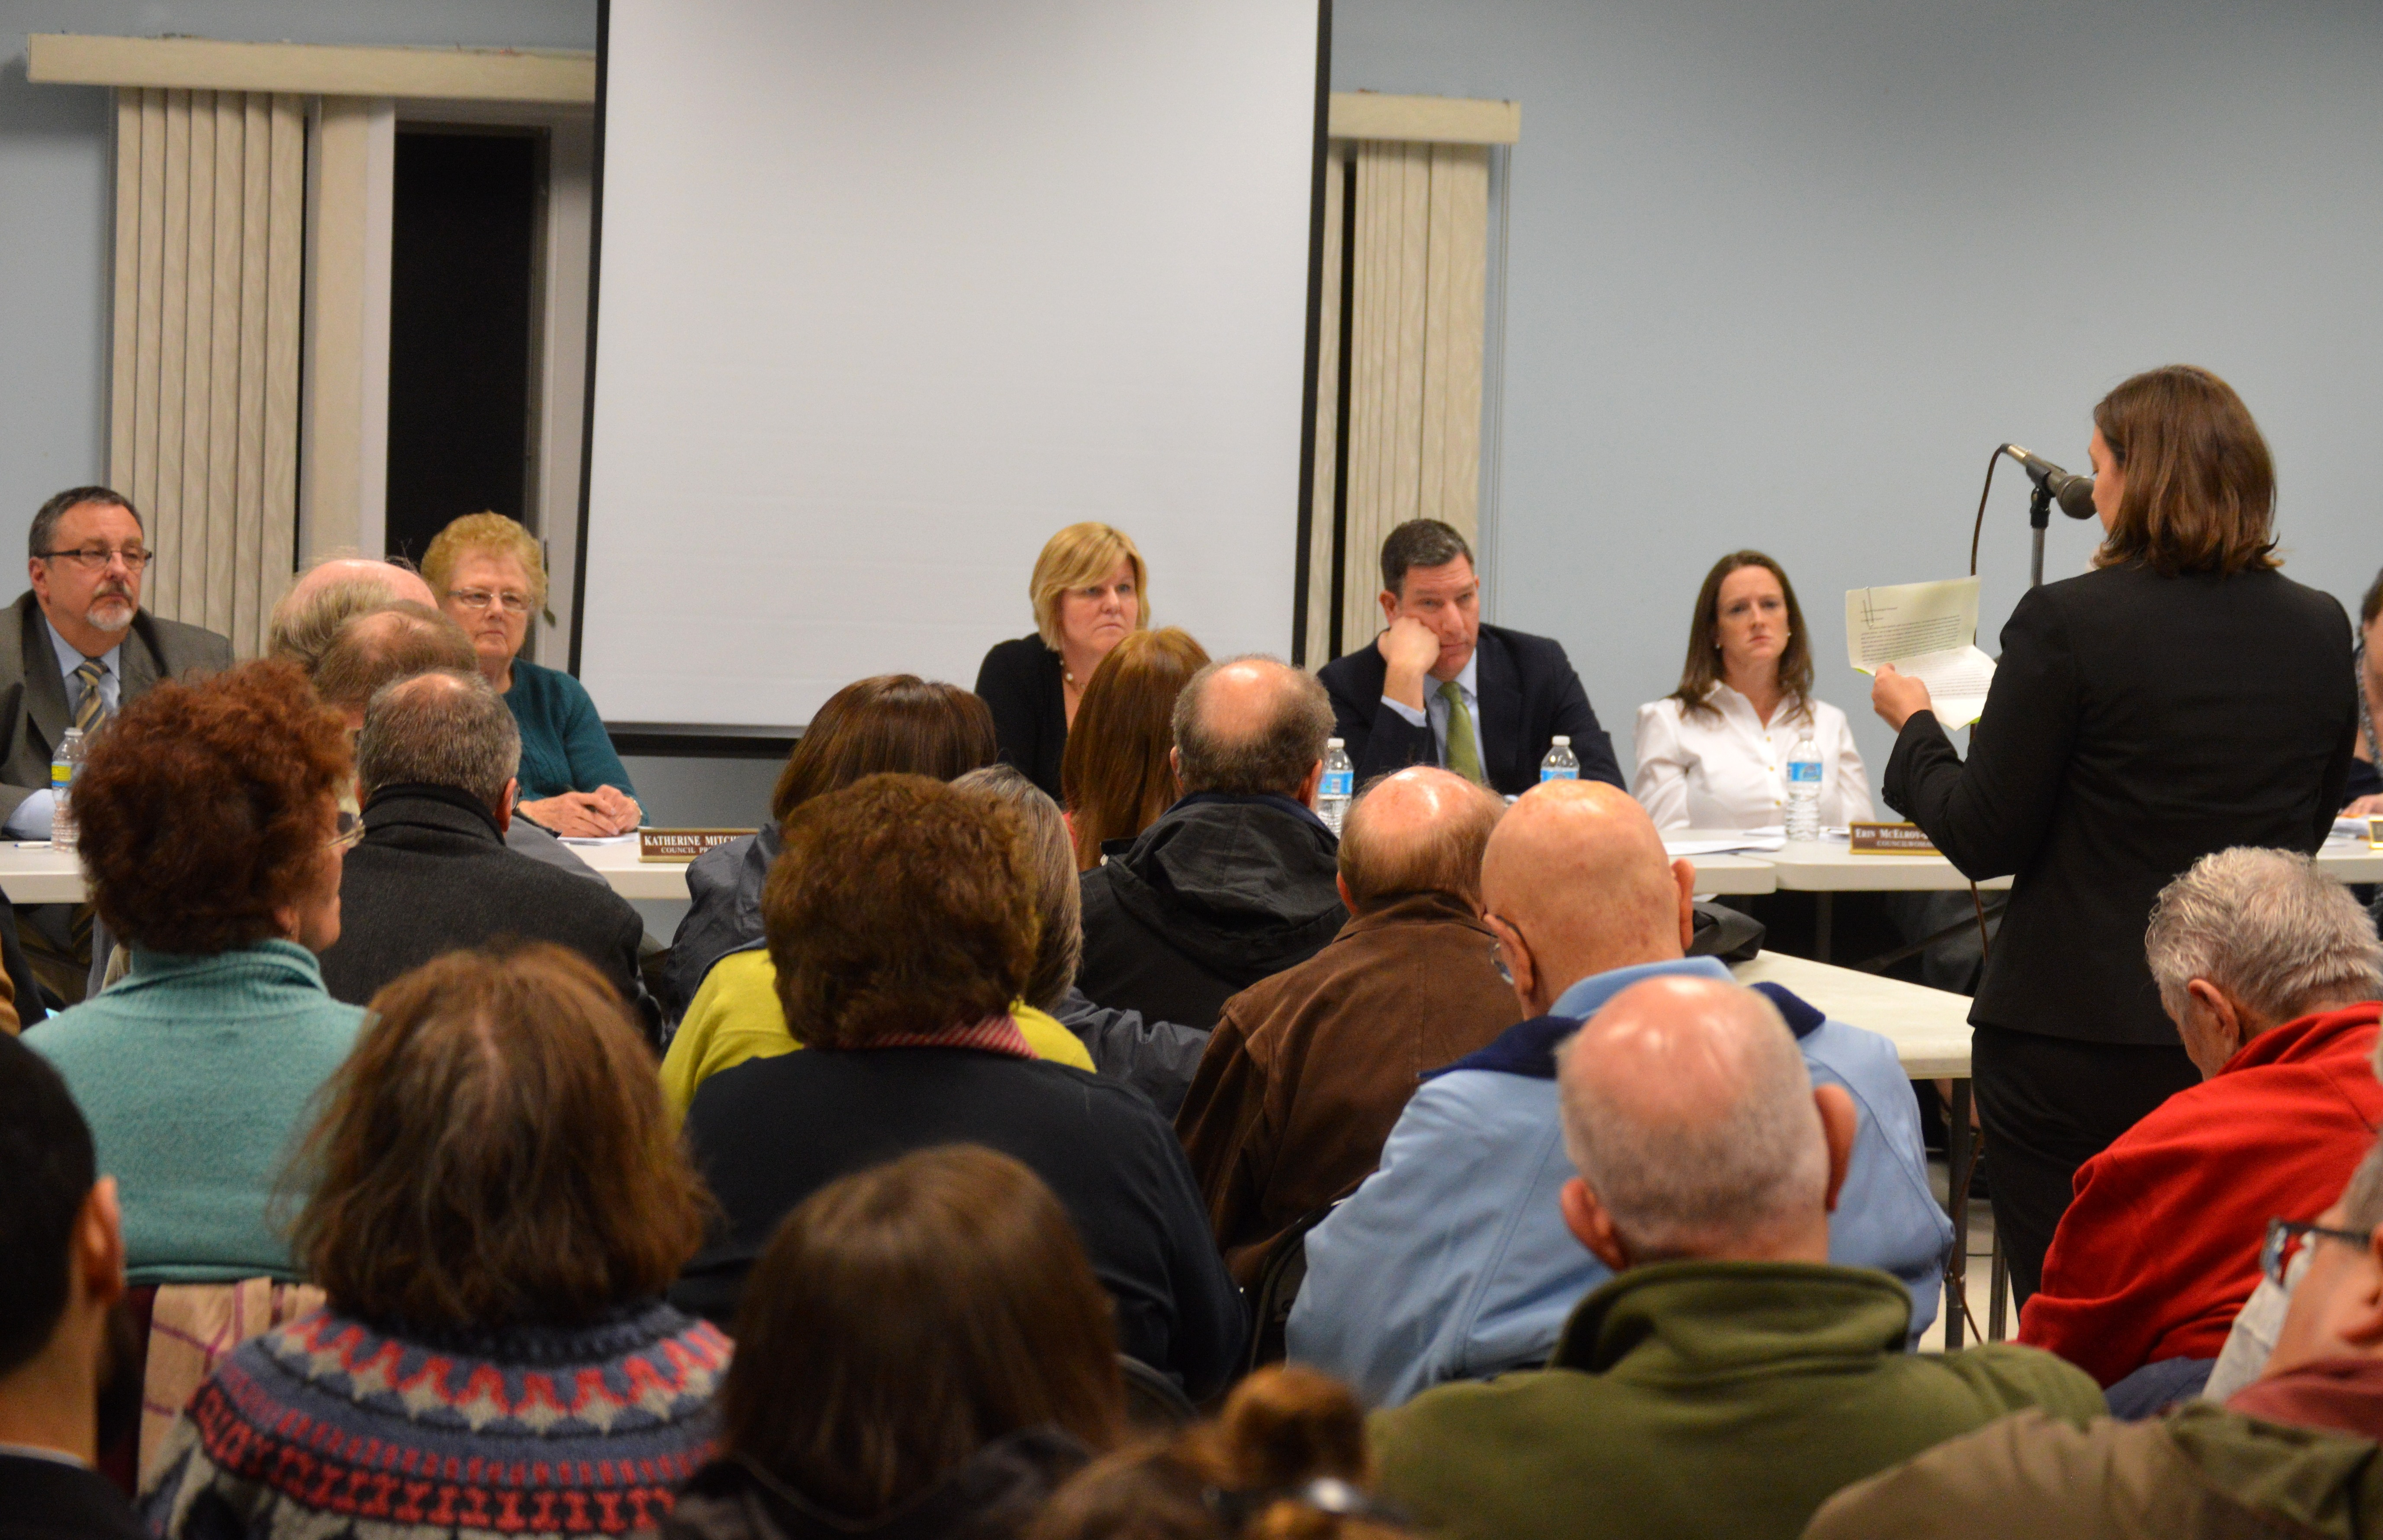 a650727be517e2e4168b_Members_of_the_public_ask_questions_of_Fanwood_Mayor_and_Council.JPG